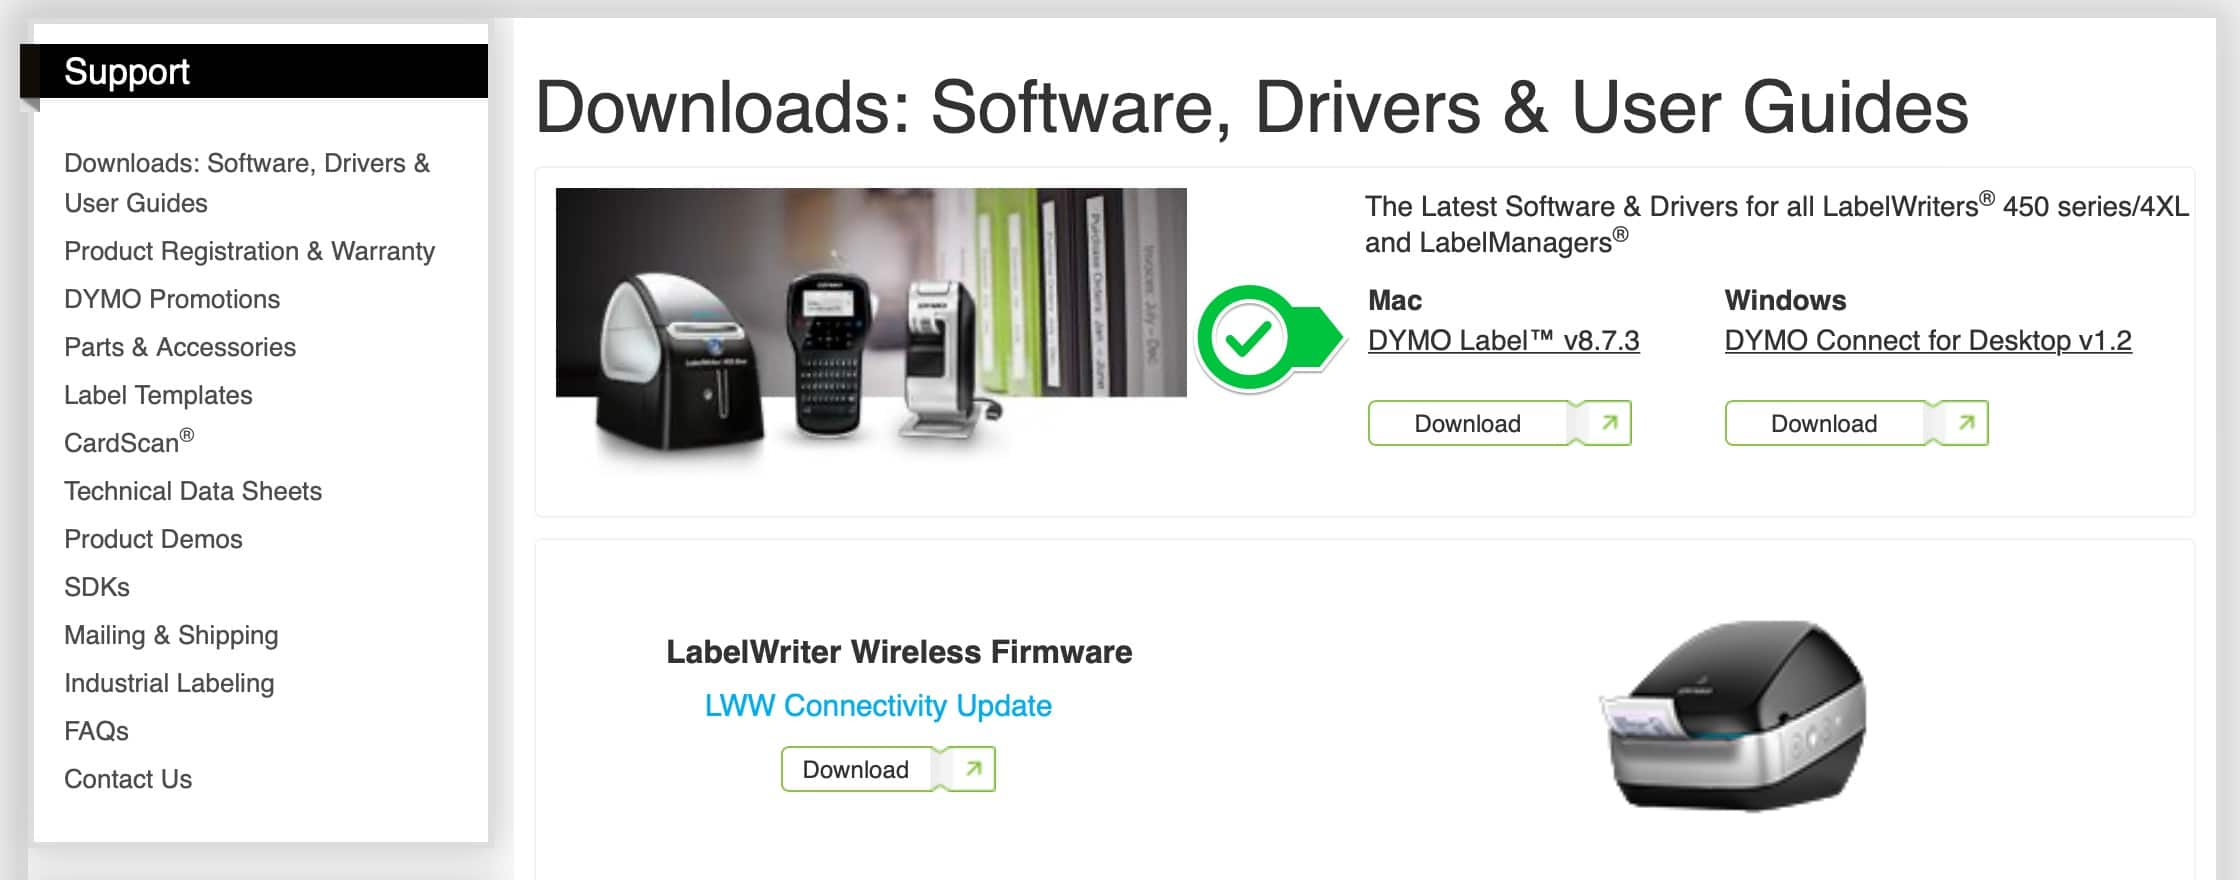 Click Download to download the DYMO Label software.